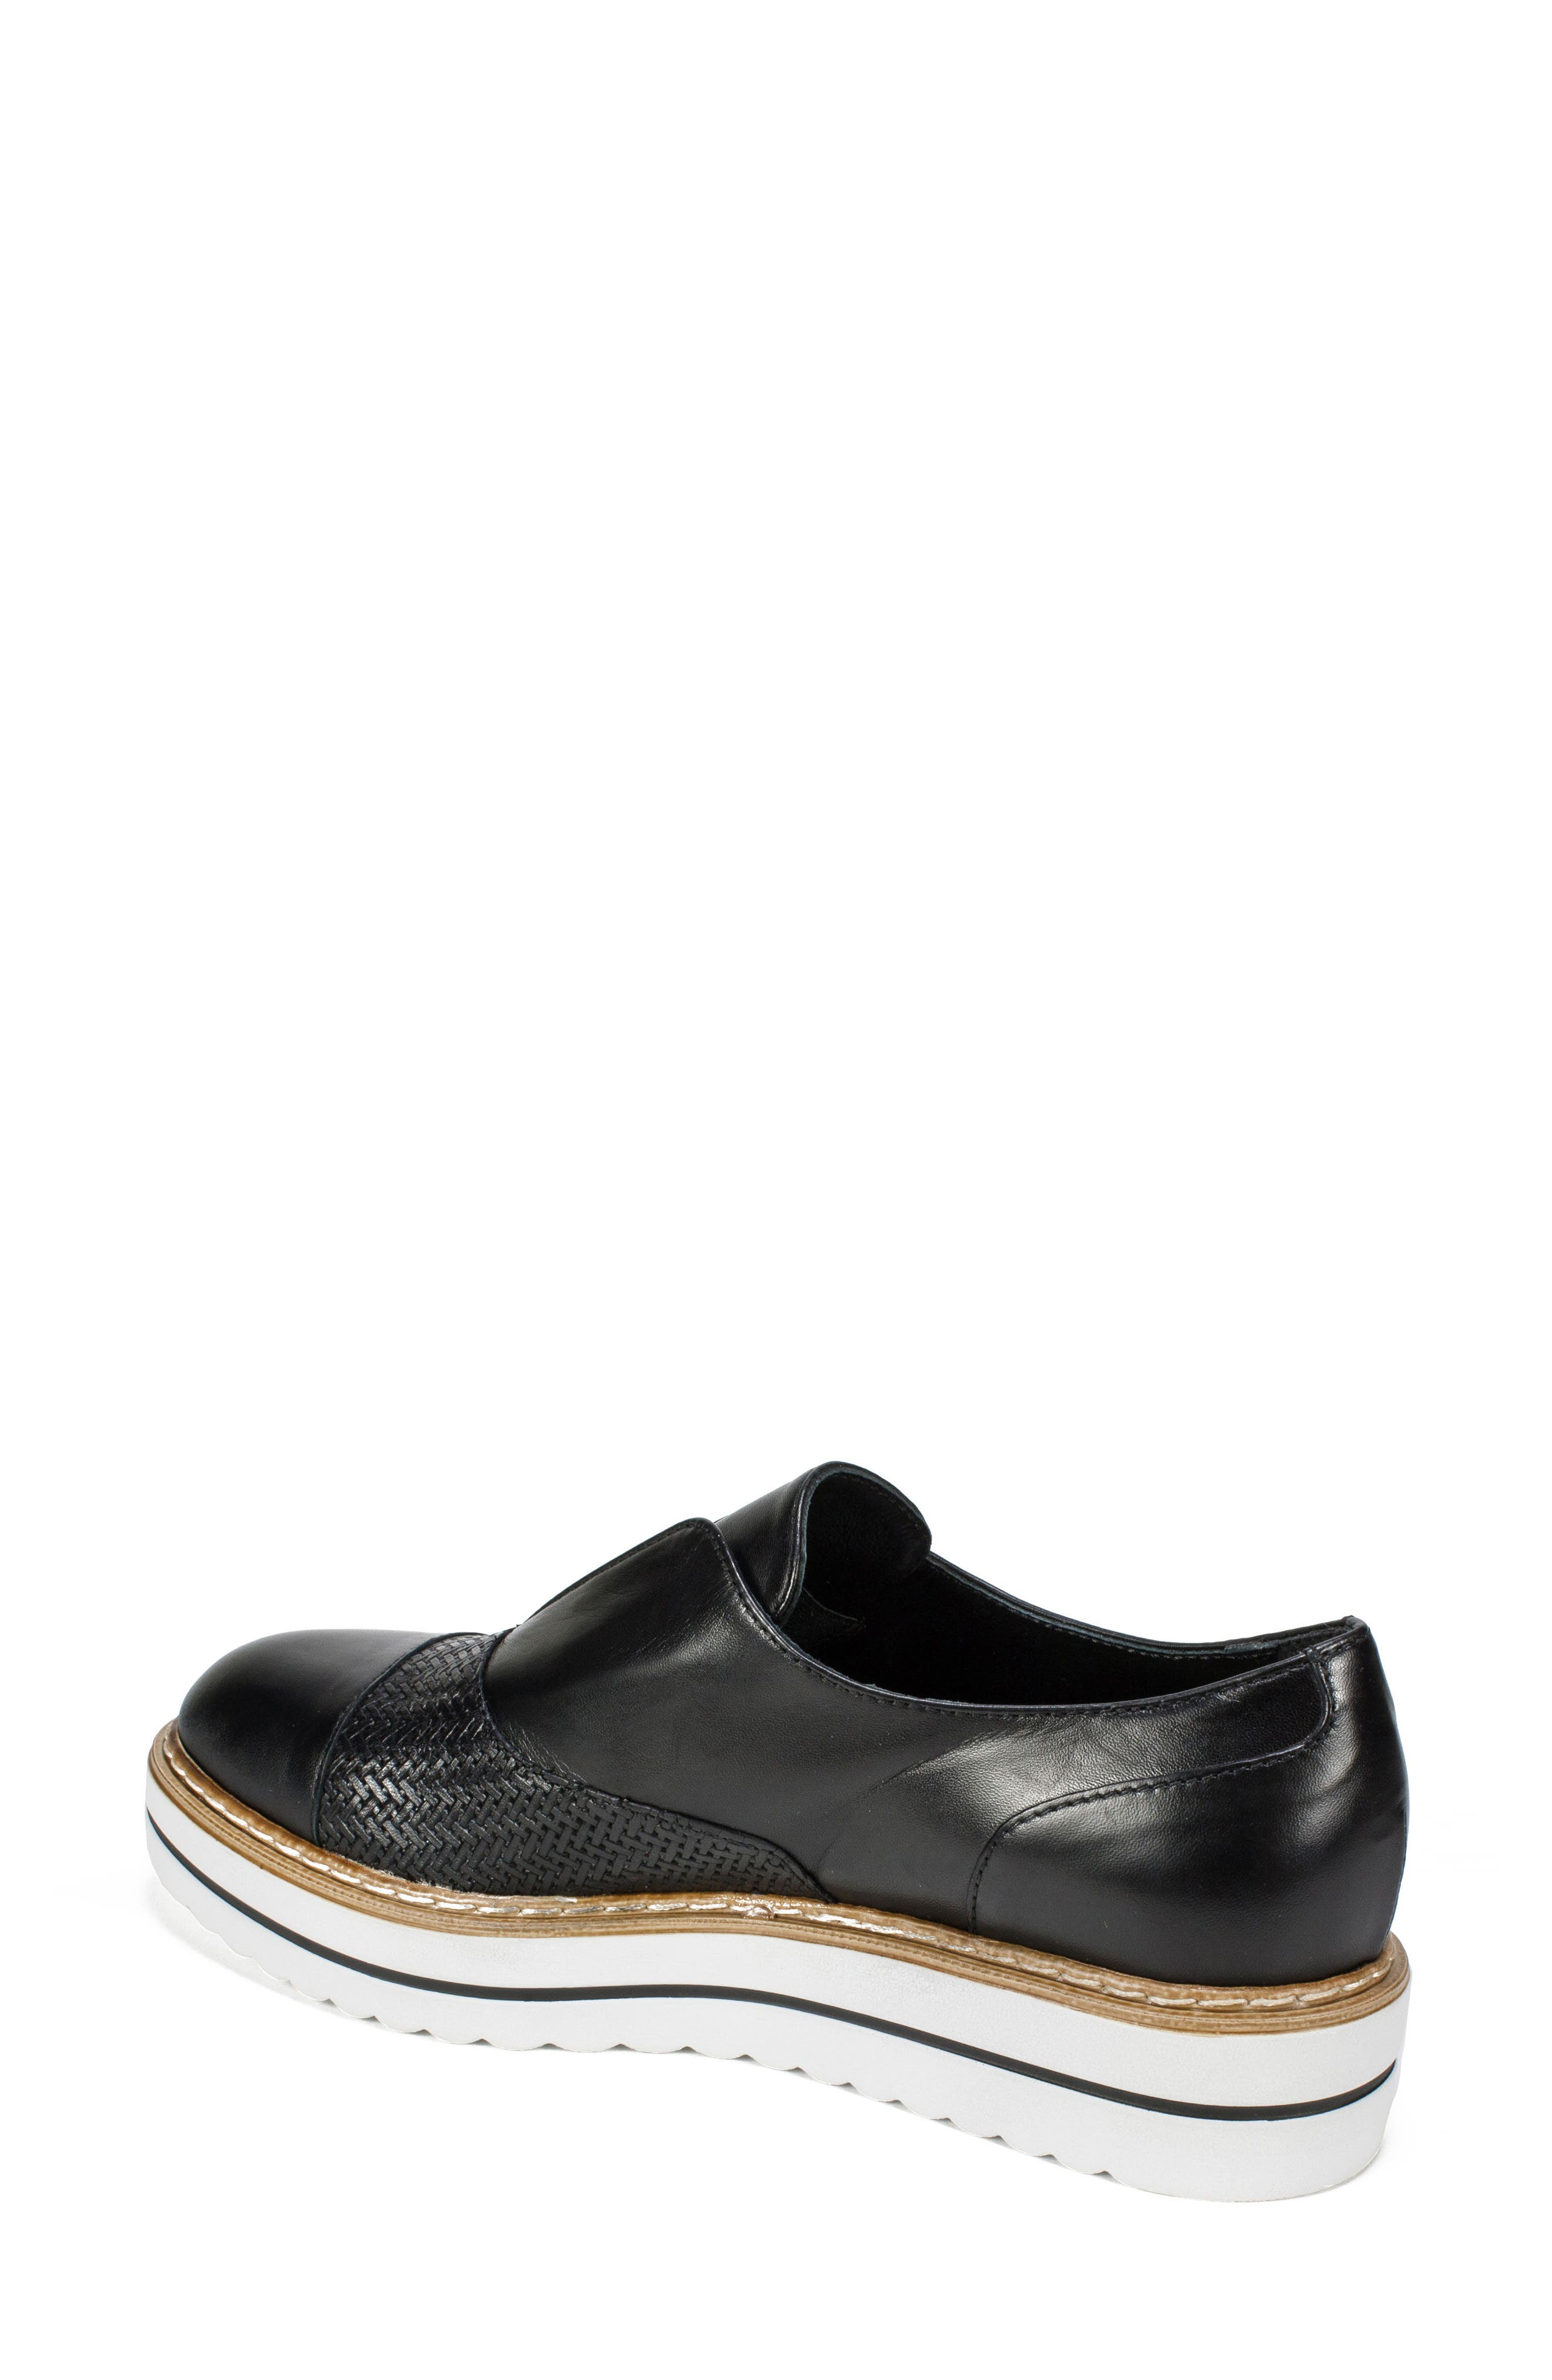 Bliss Loafer,                             Alternate thumbnail 2, color,                             Black Leather